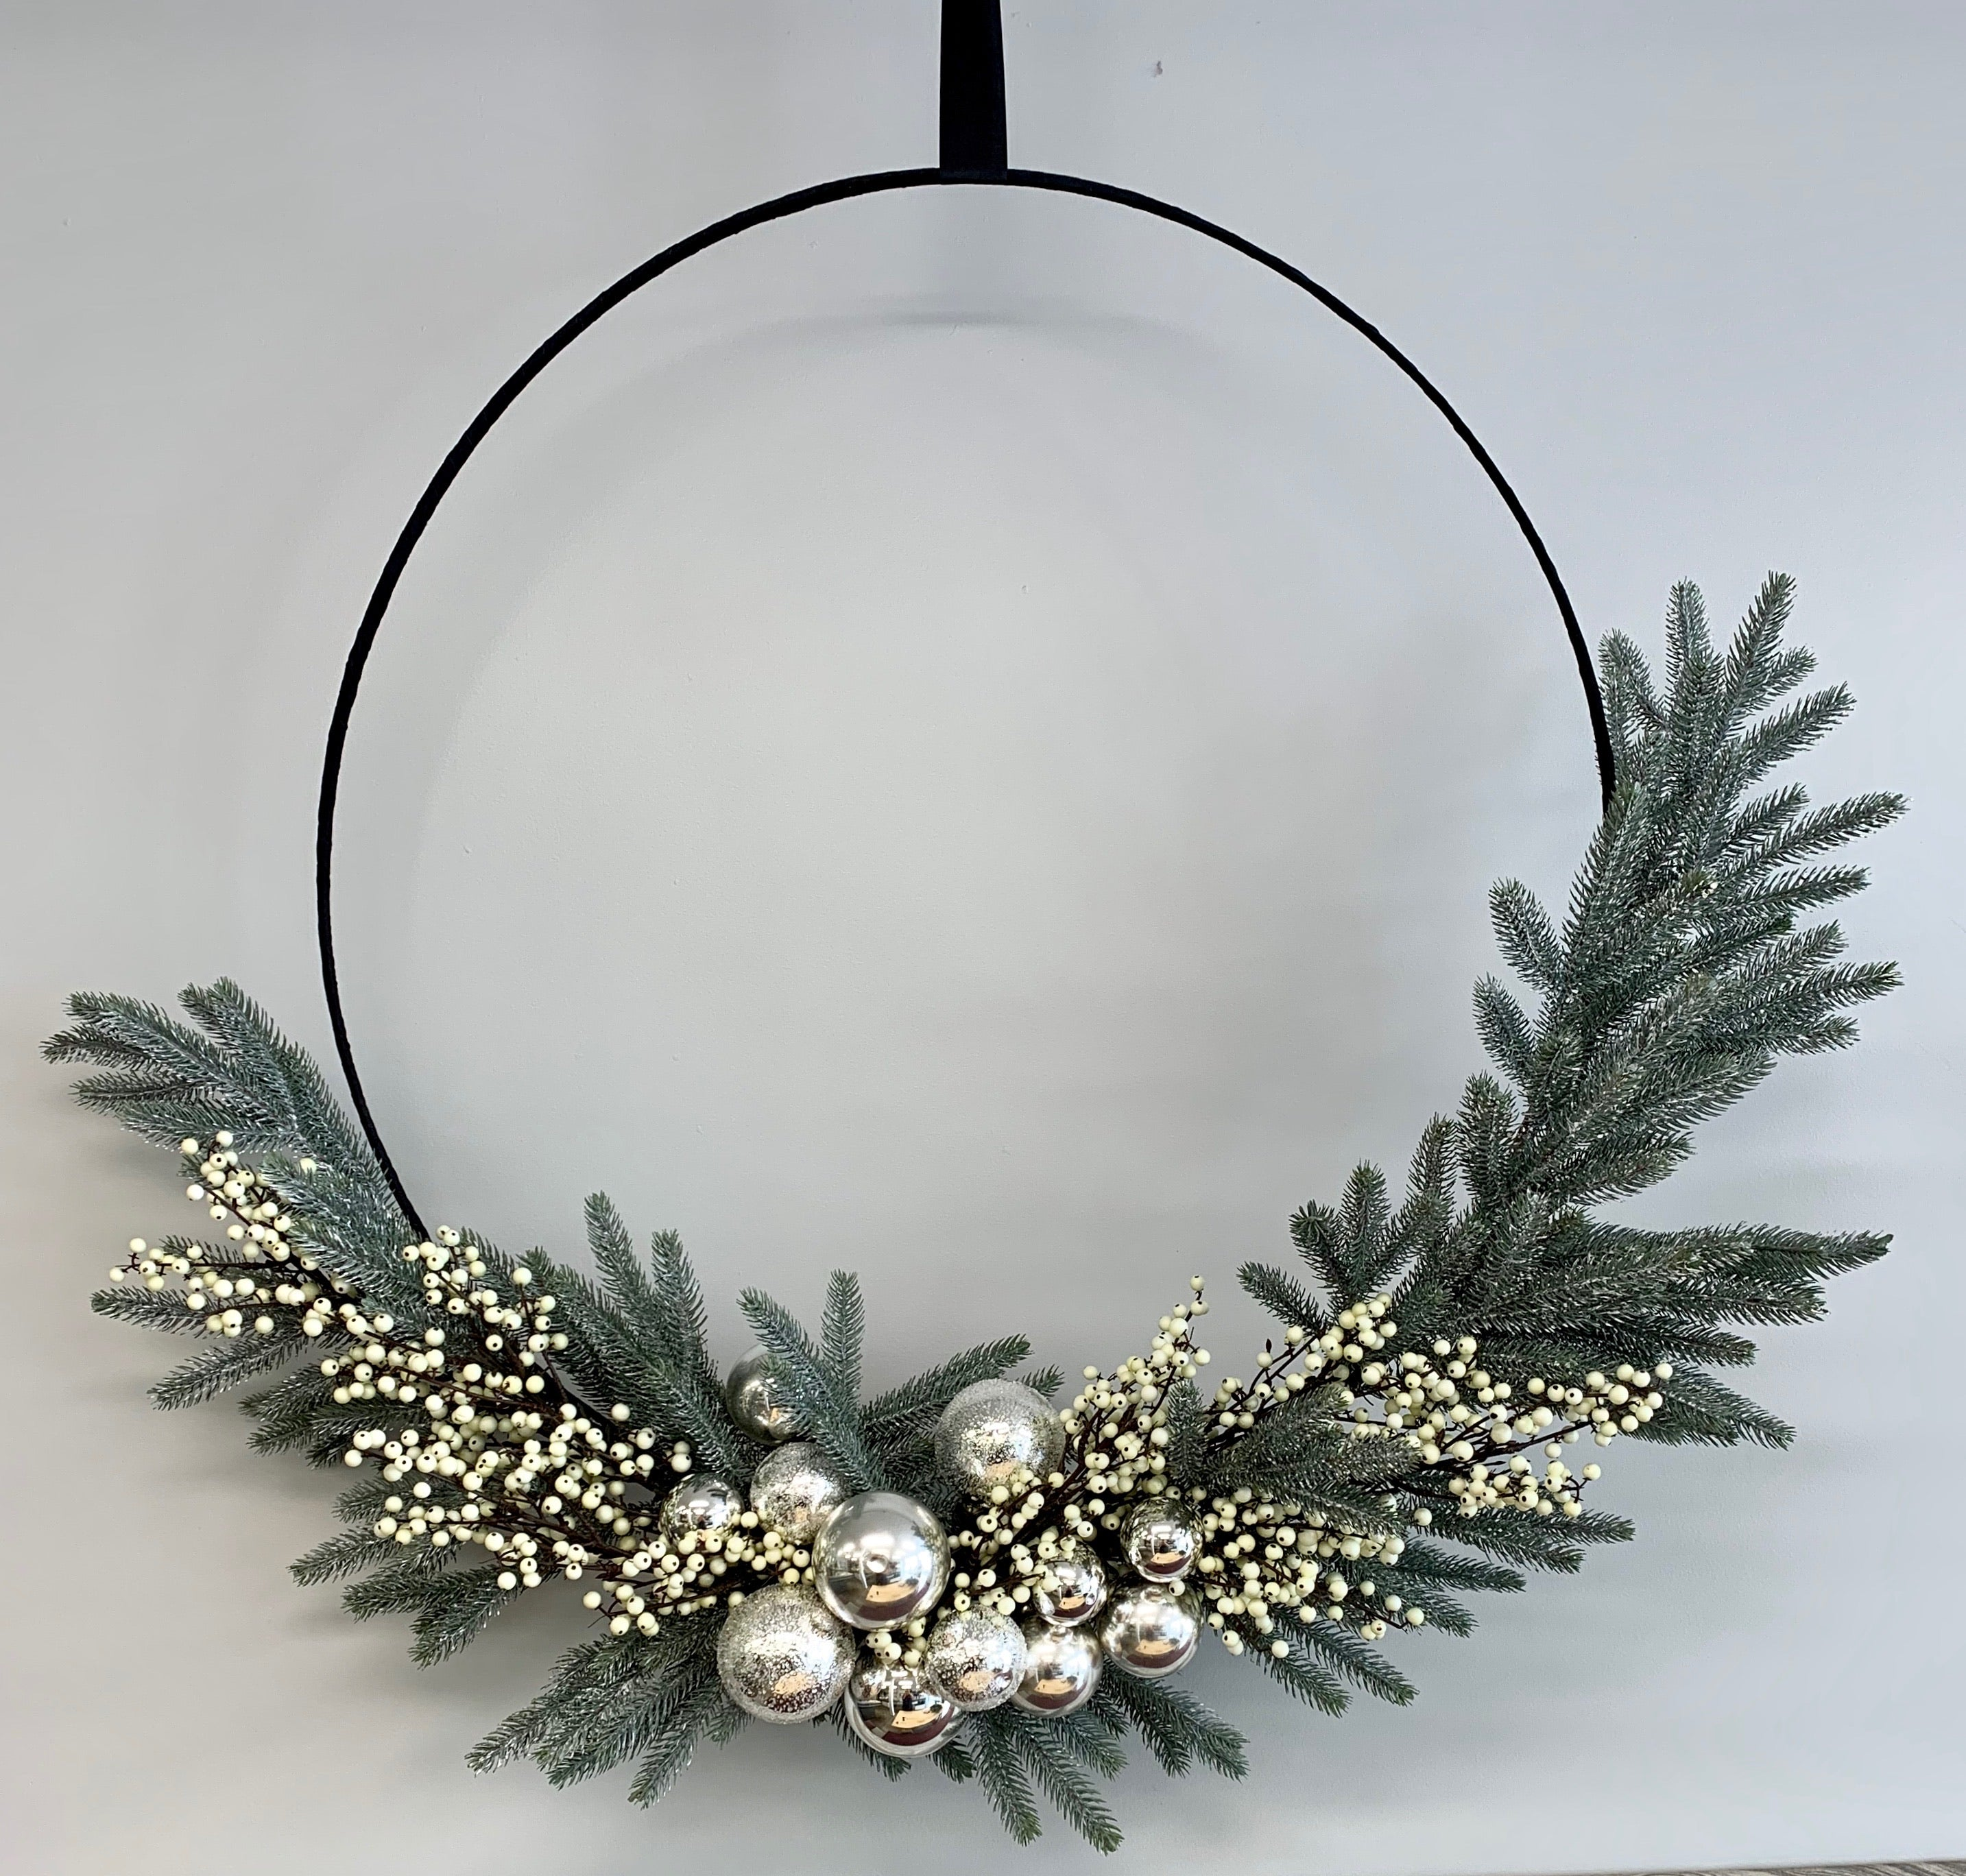 Foliage Christmas Wreath - 80cm diameter